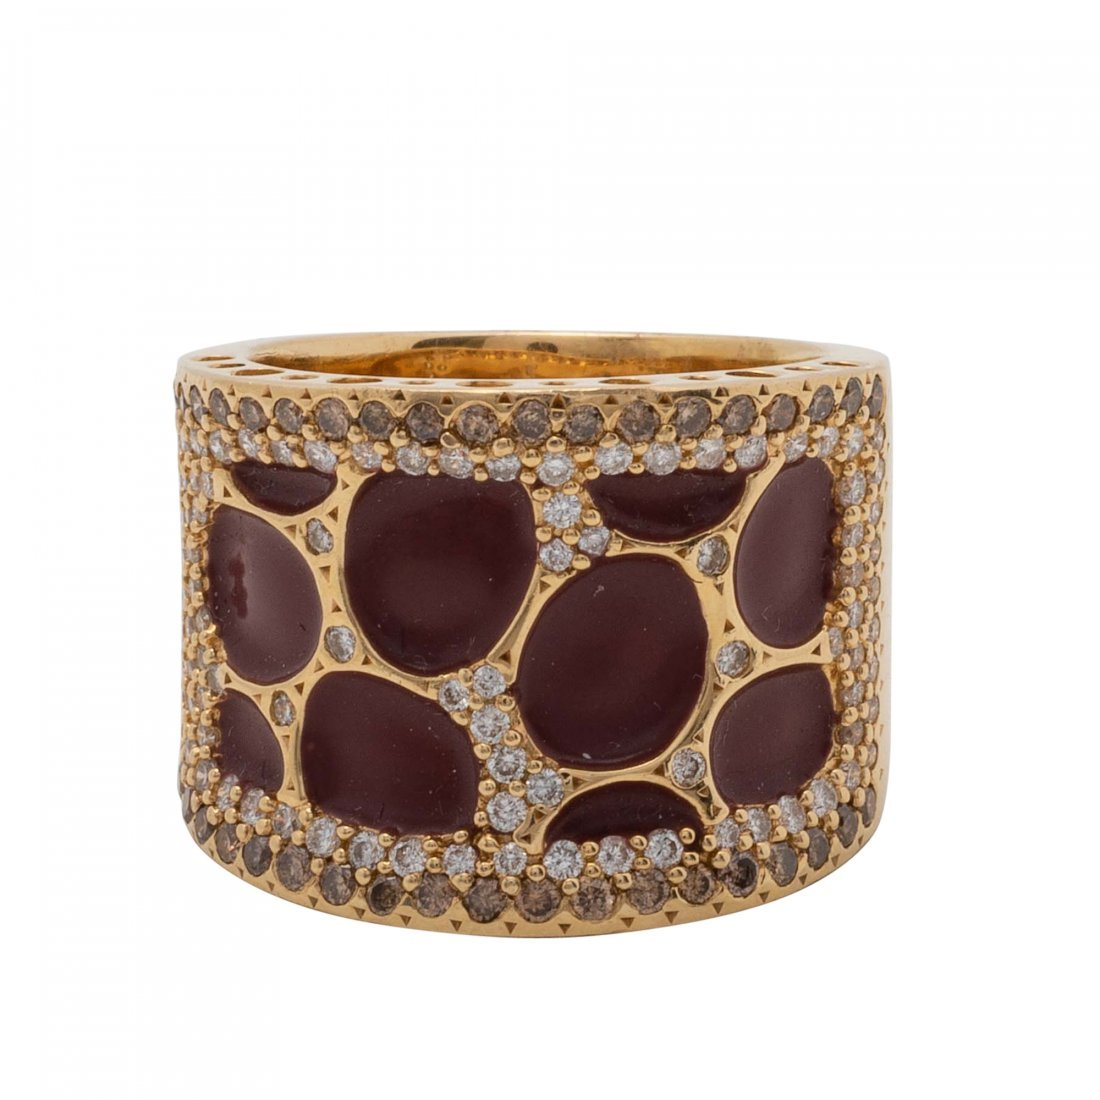 Gold, Colored Stone and Diamond Ring